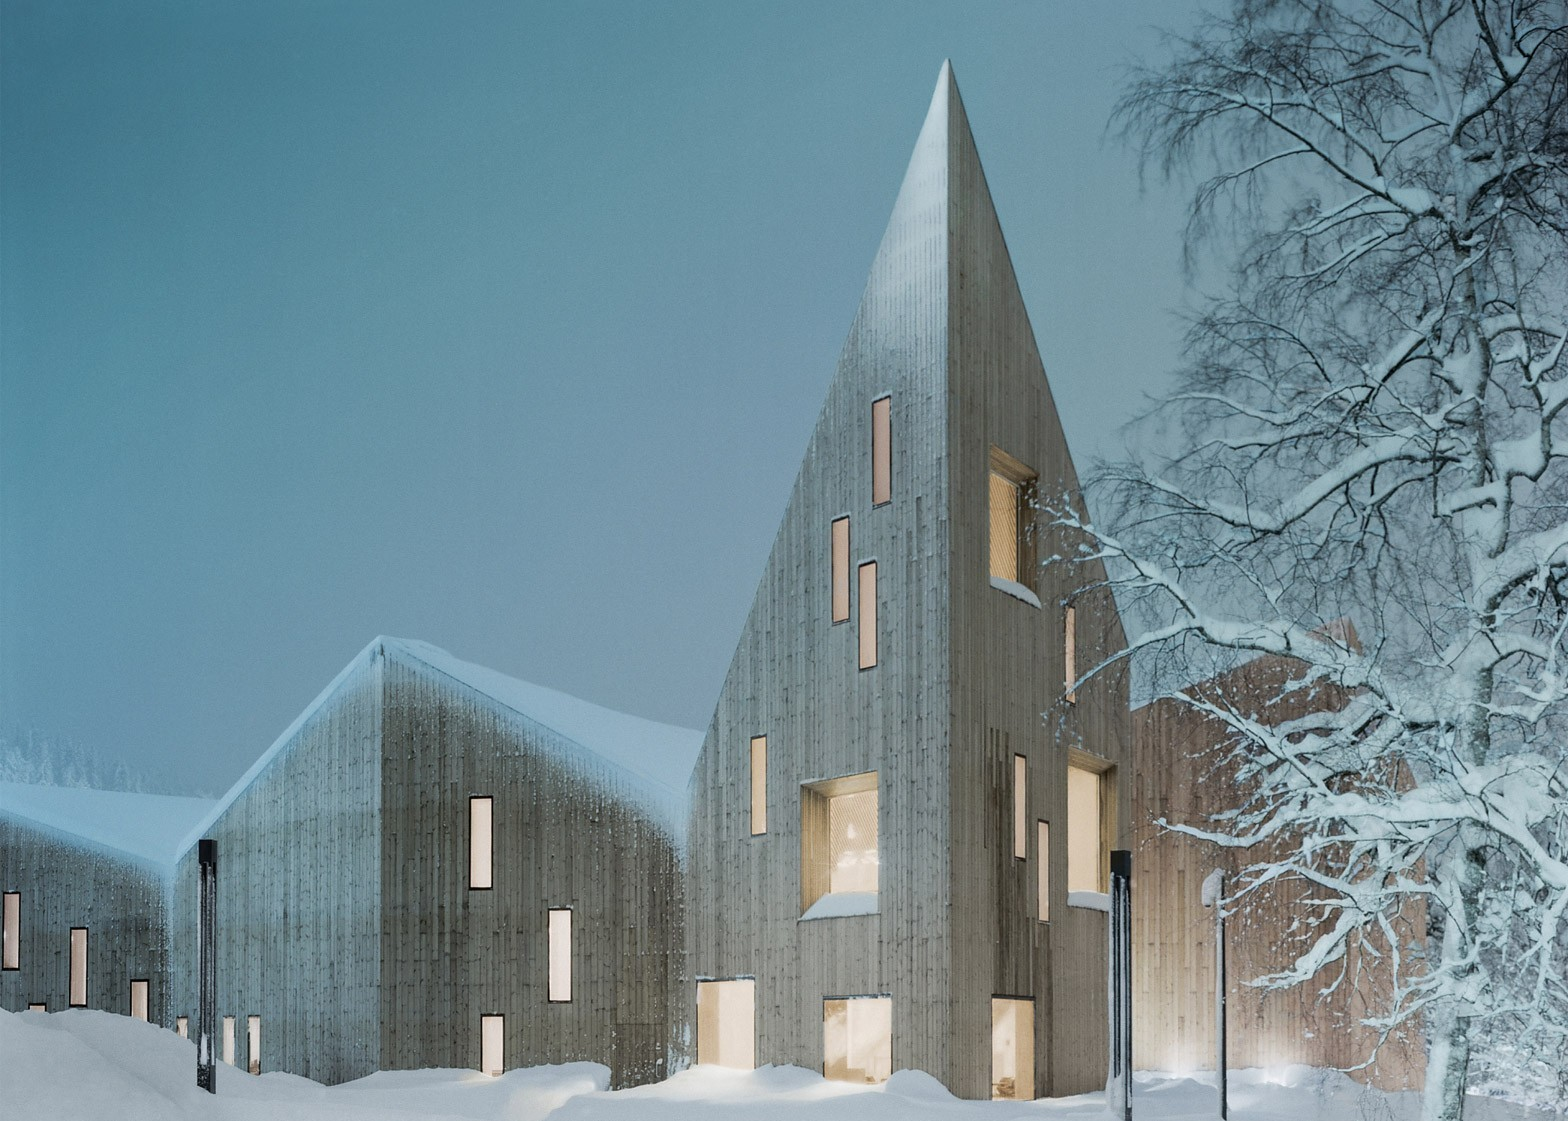 Romsdal Folk Museum, Molde, Norway, by Reiulf Ramstad Architects